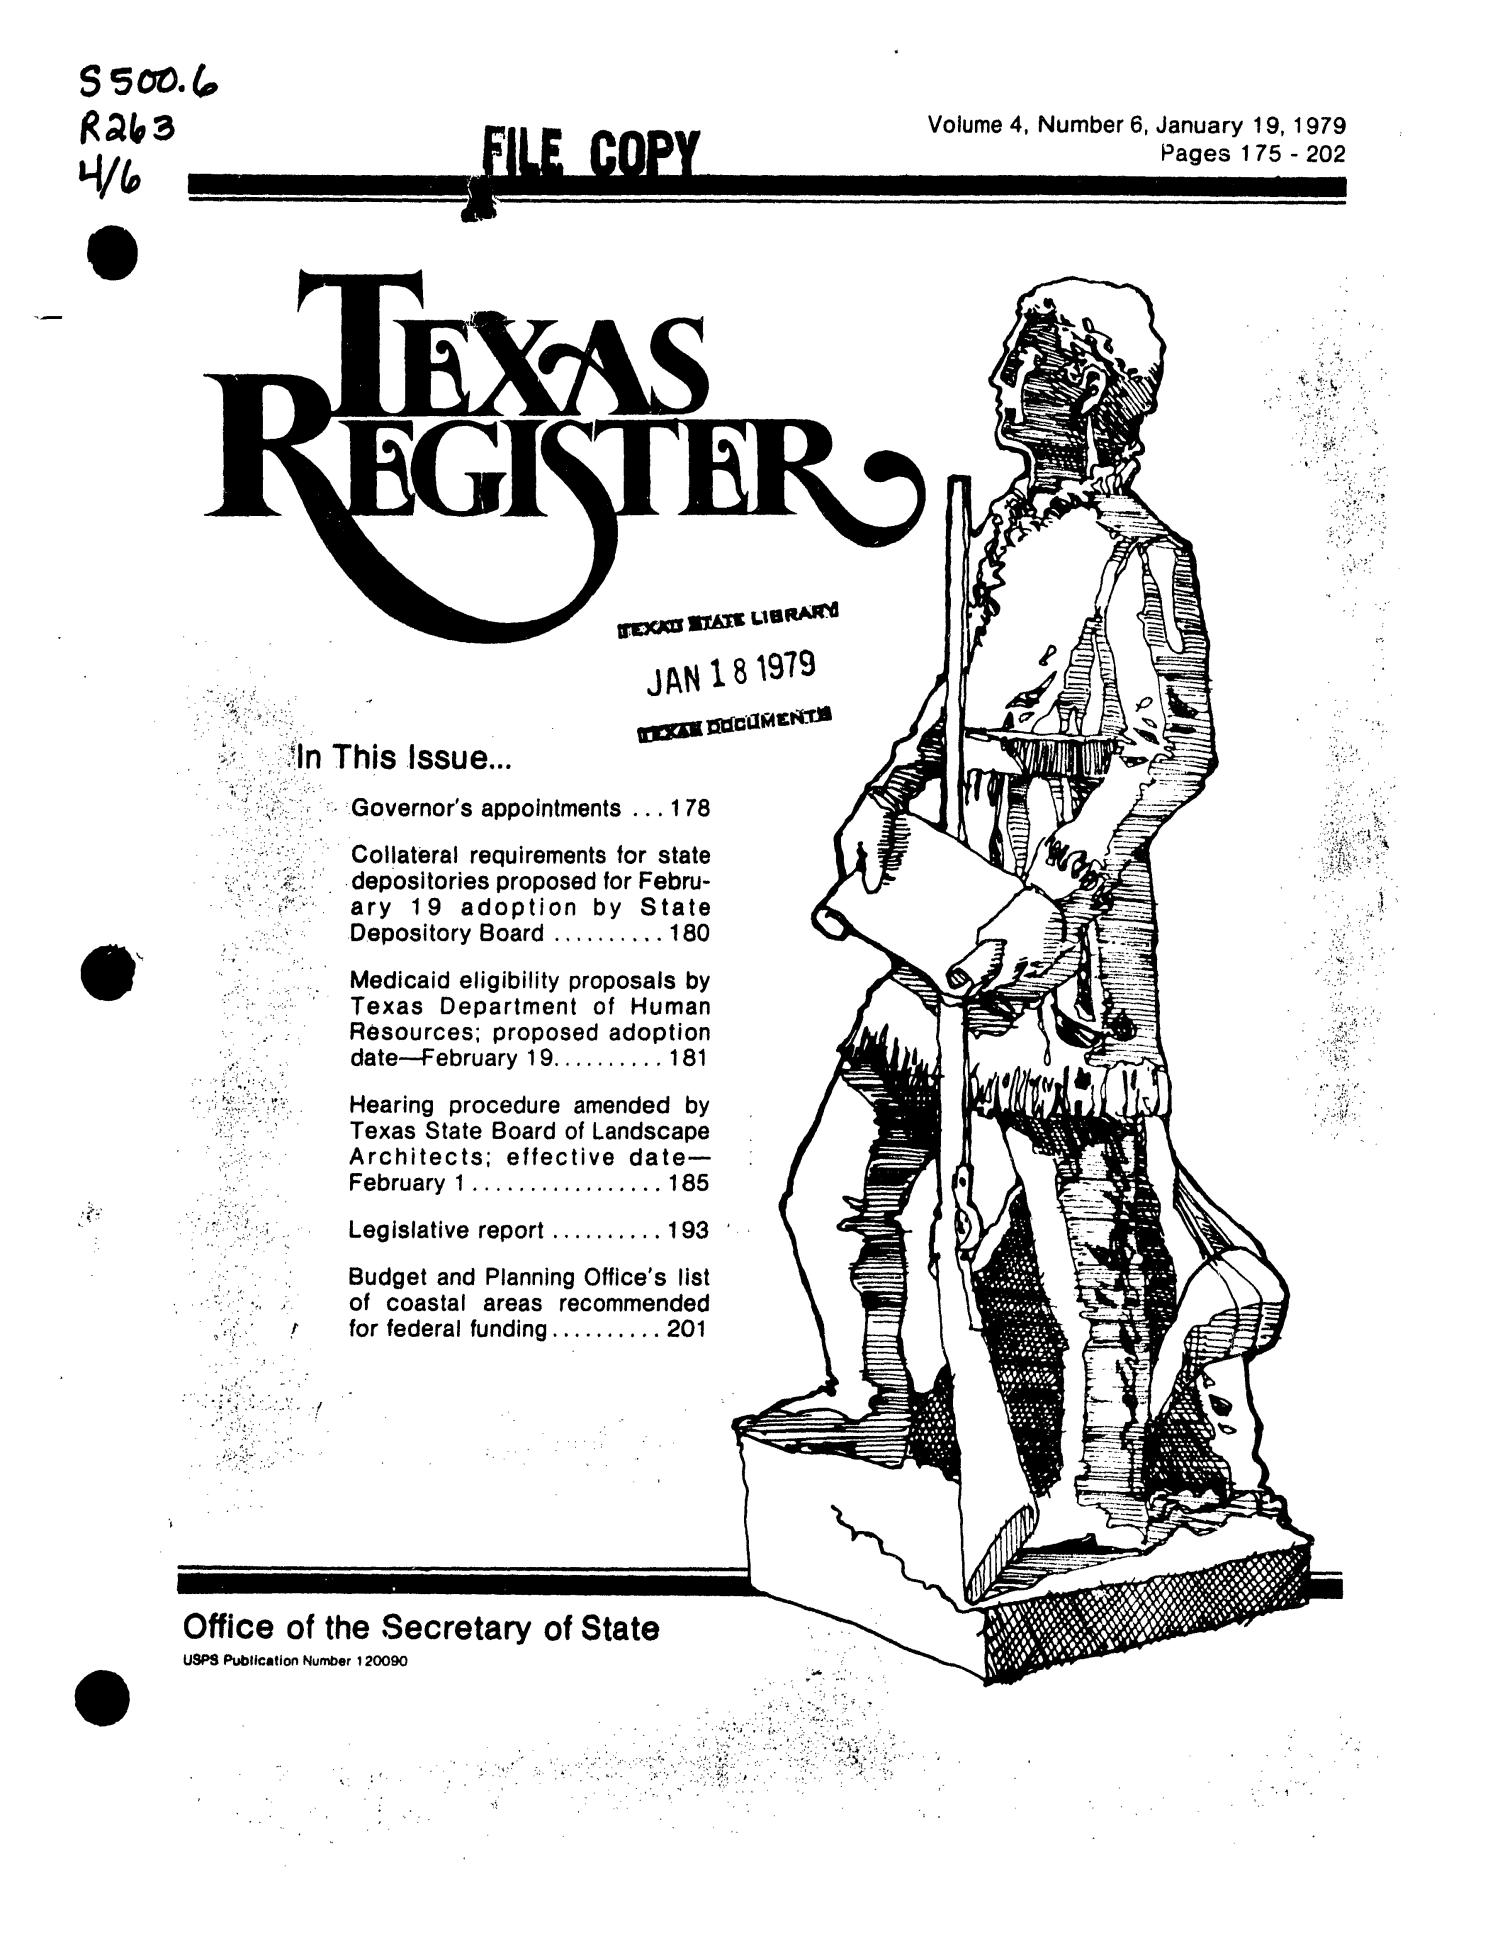 Texas Register, Volume 4, Number 6, Pages 175-202, January 19, 1979                                                                                                      Title Page